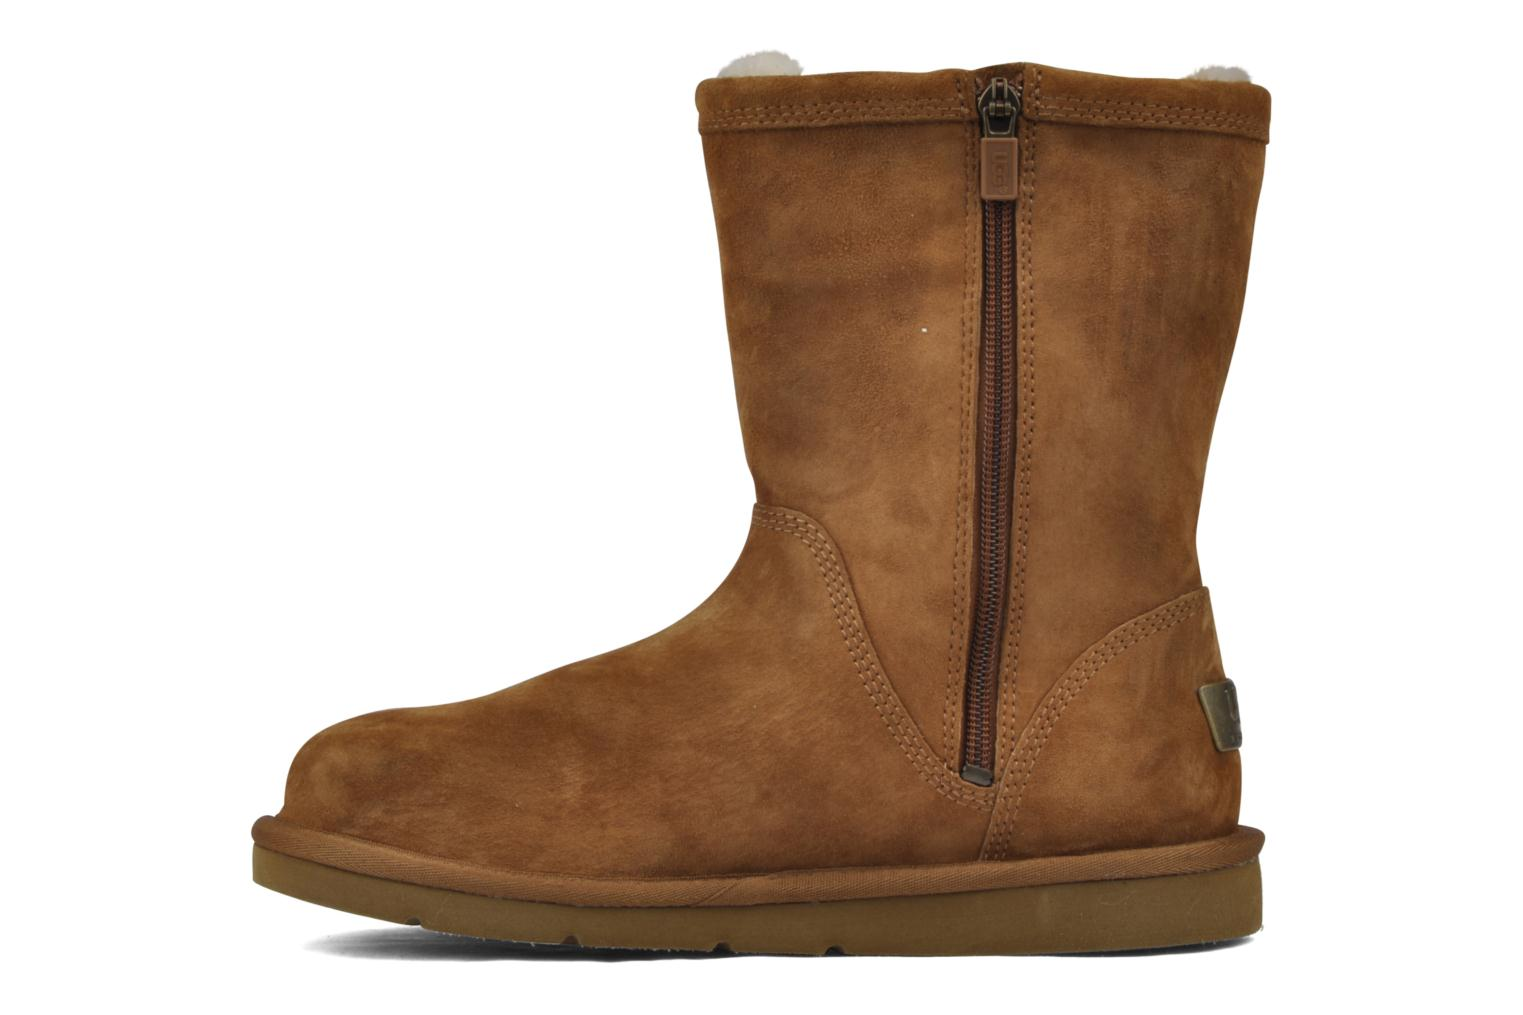 95a6bca58f5 Ugg Boots Sale Chicago - cheap watches mgc-gas.com